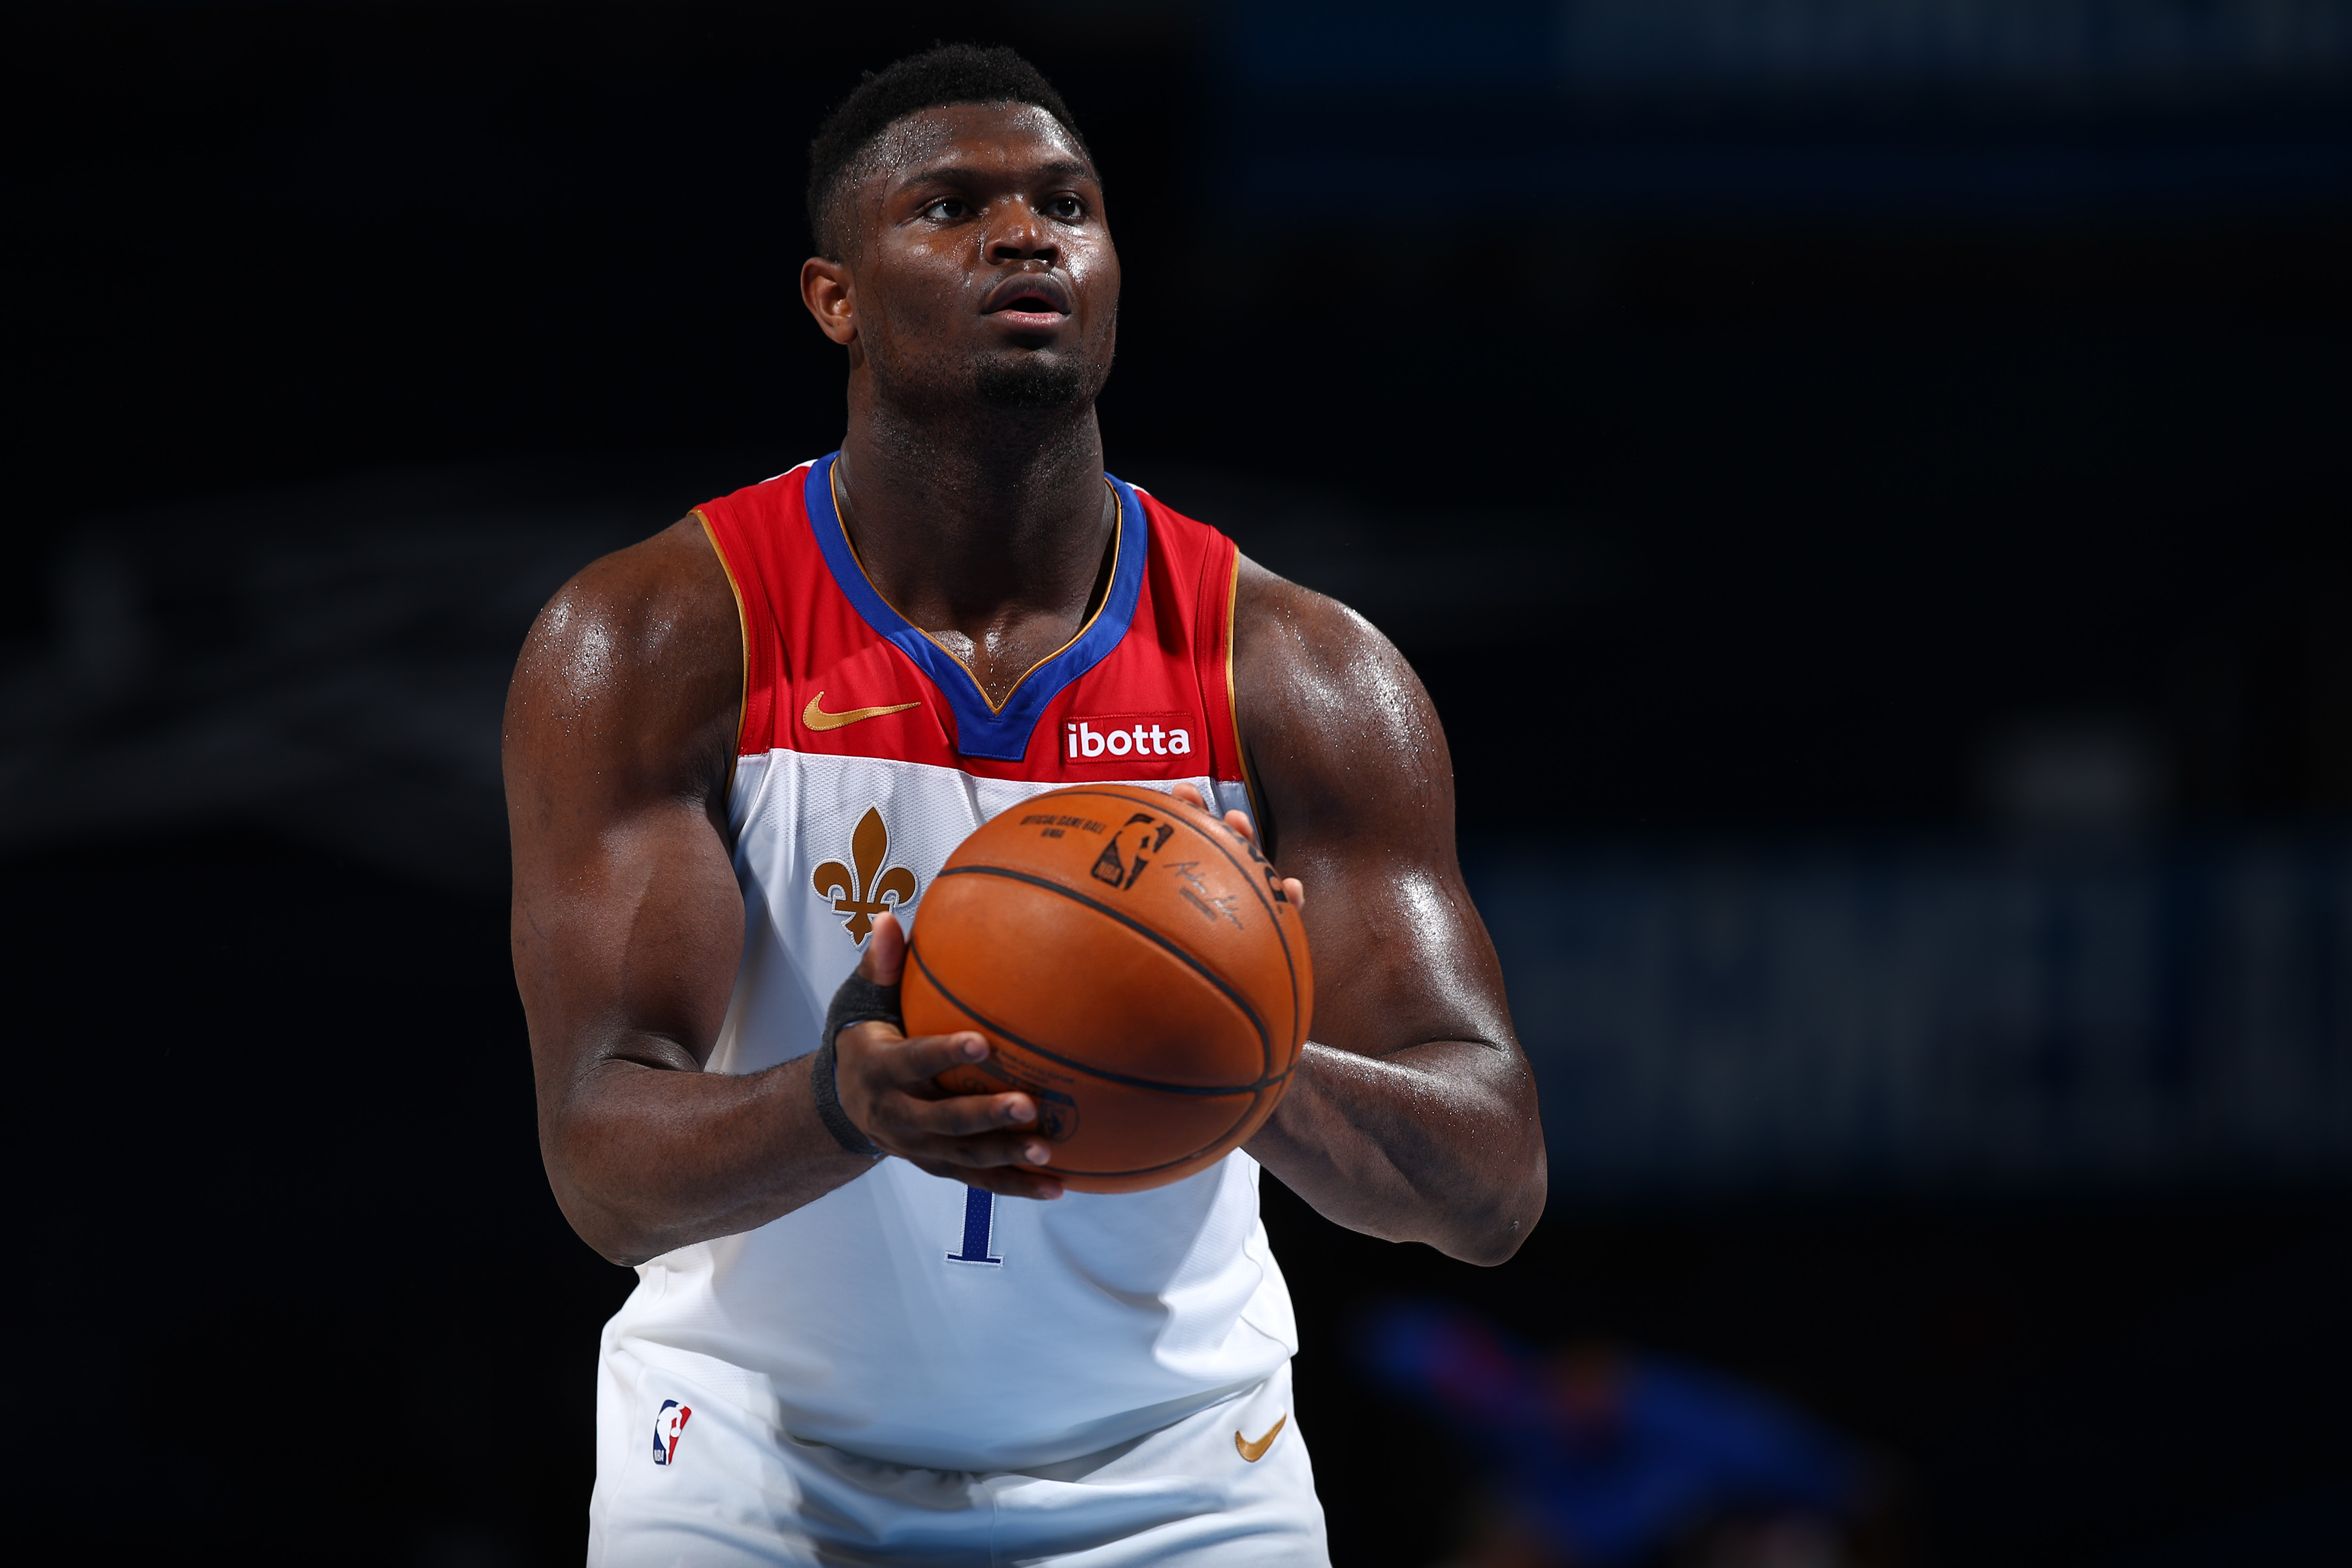 Zion Williamson of the New Orleans Pelicans shoots a free throw during the game against the Oklahoma City Thunder on April 29, 2021 at Chesapeake Energy Arena in Oklahoma City, Oklahoma.